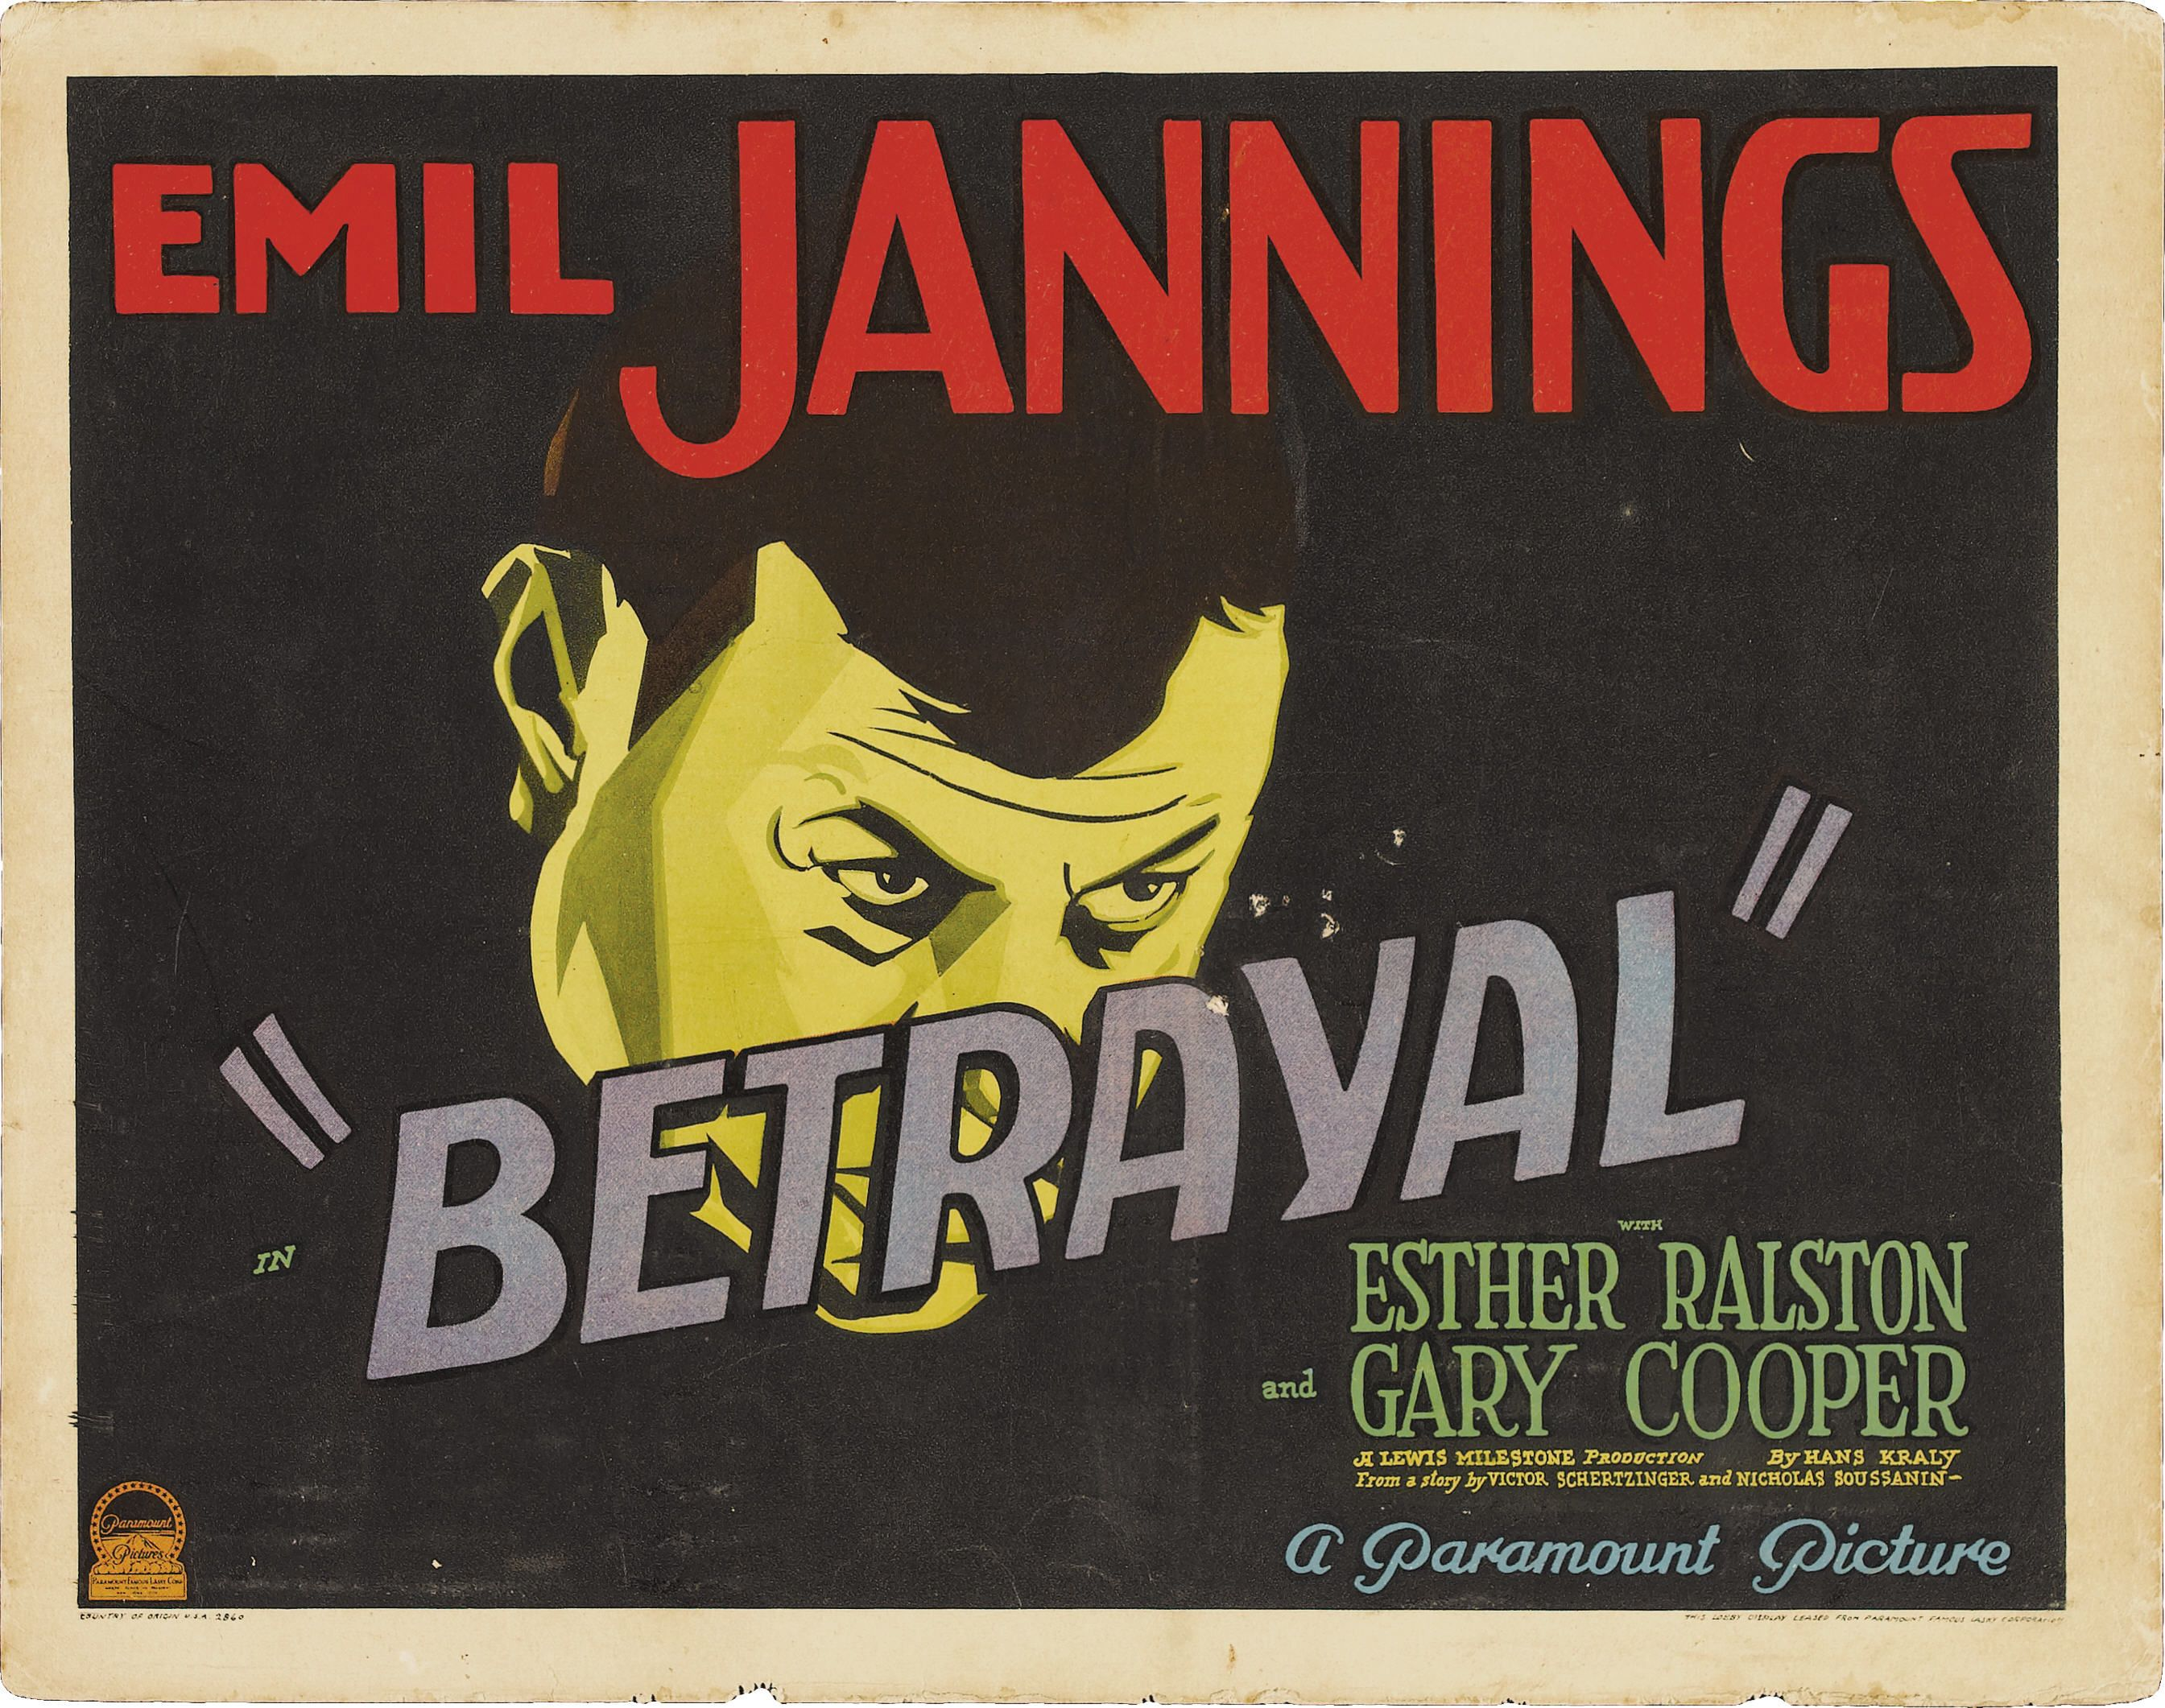 Betrayal with Esther Ralston, Gary Cooper, and Emil Jannings 1929